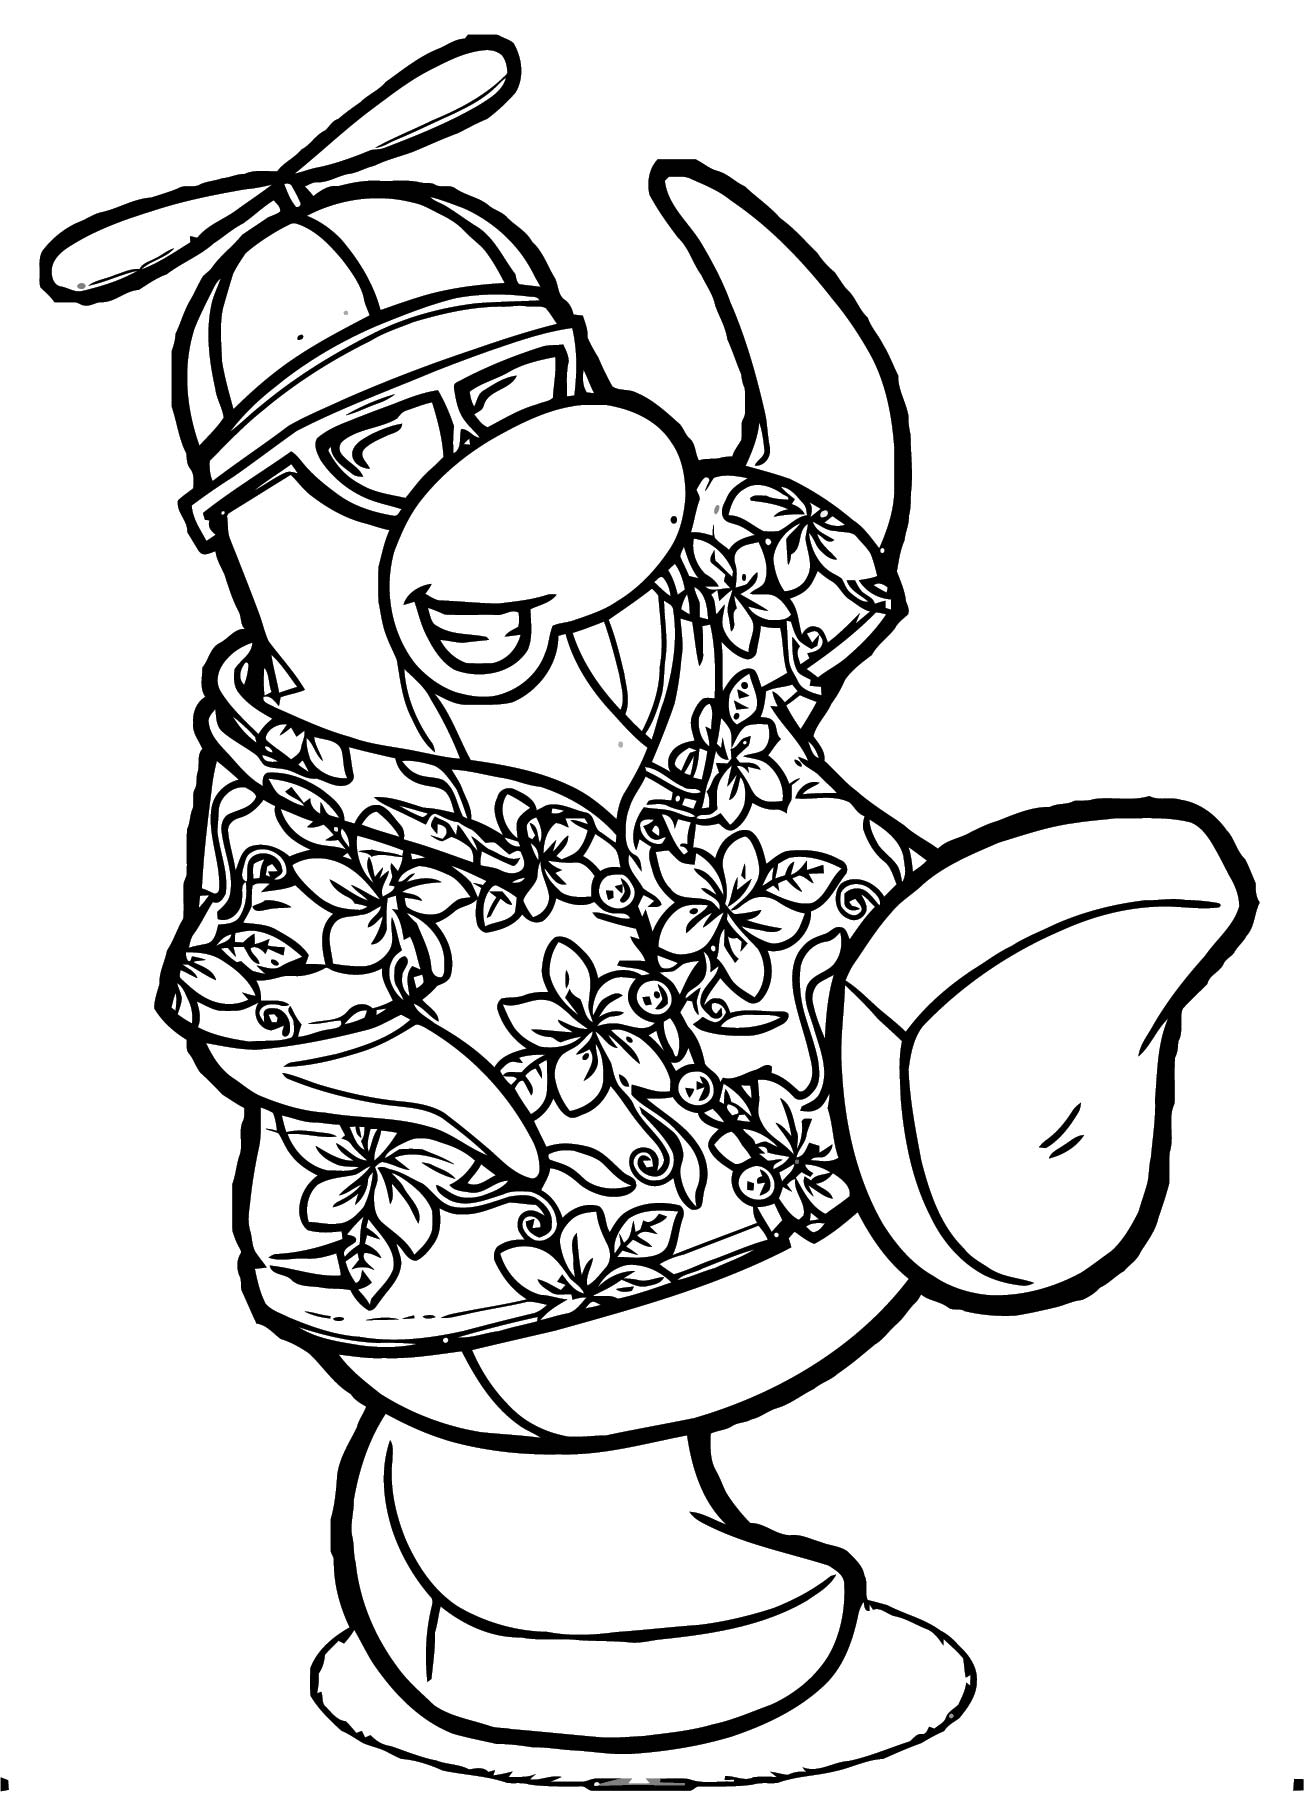 Rookie Hawaiian Shirt Coloring Page